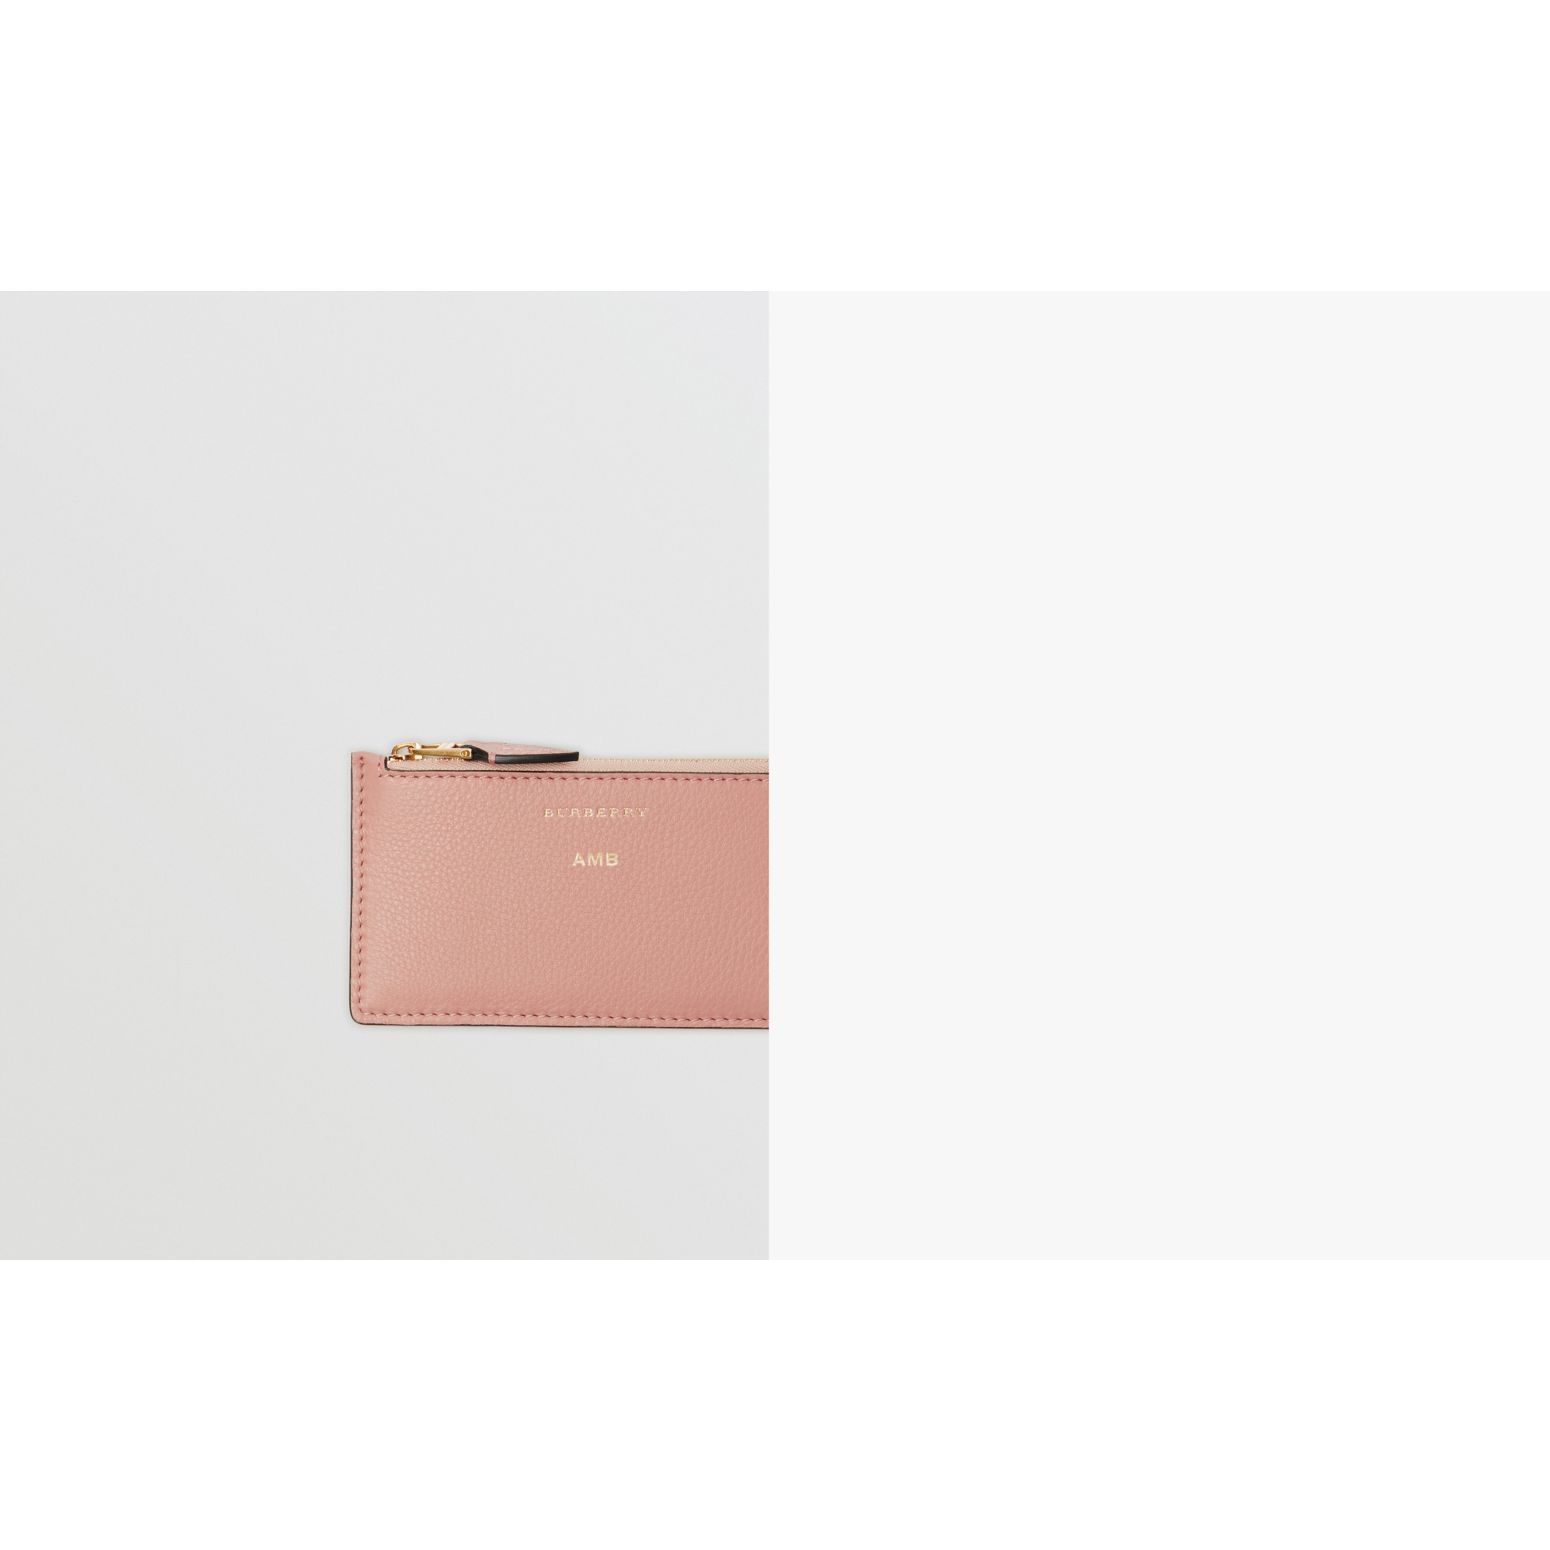 Two-tone Leather Zip Card Case in Ash Rose - Women | Burberry - gallery image 1